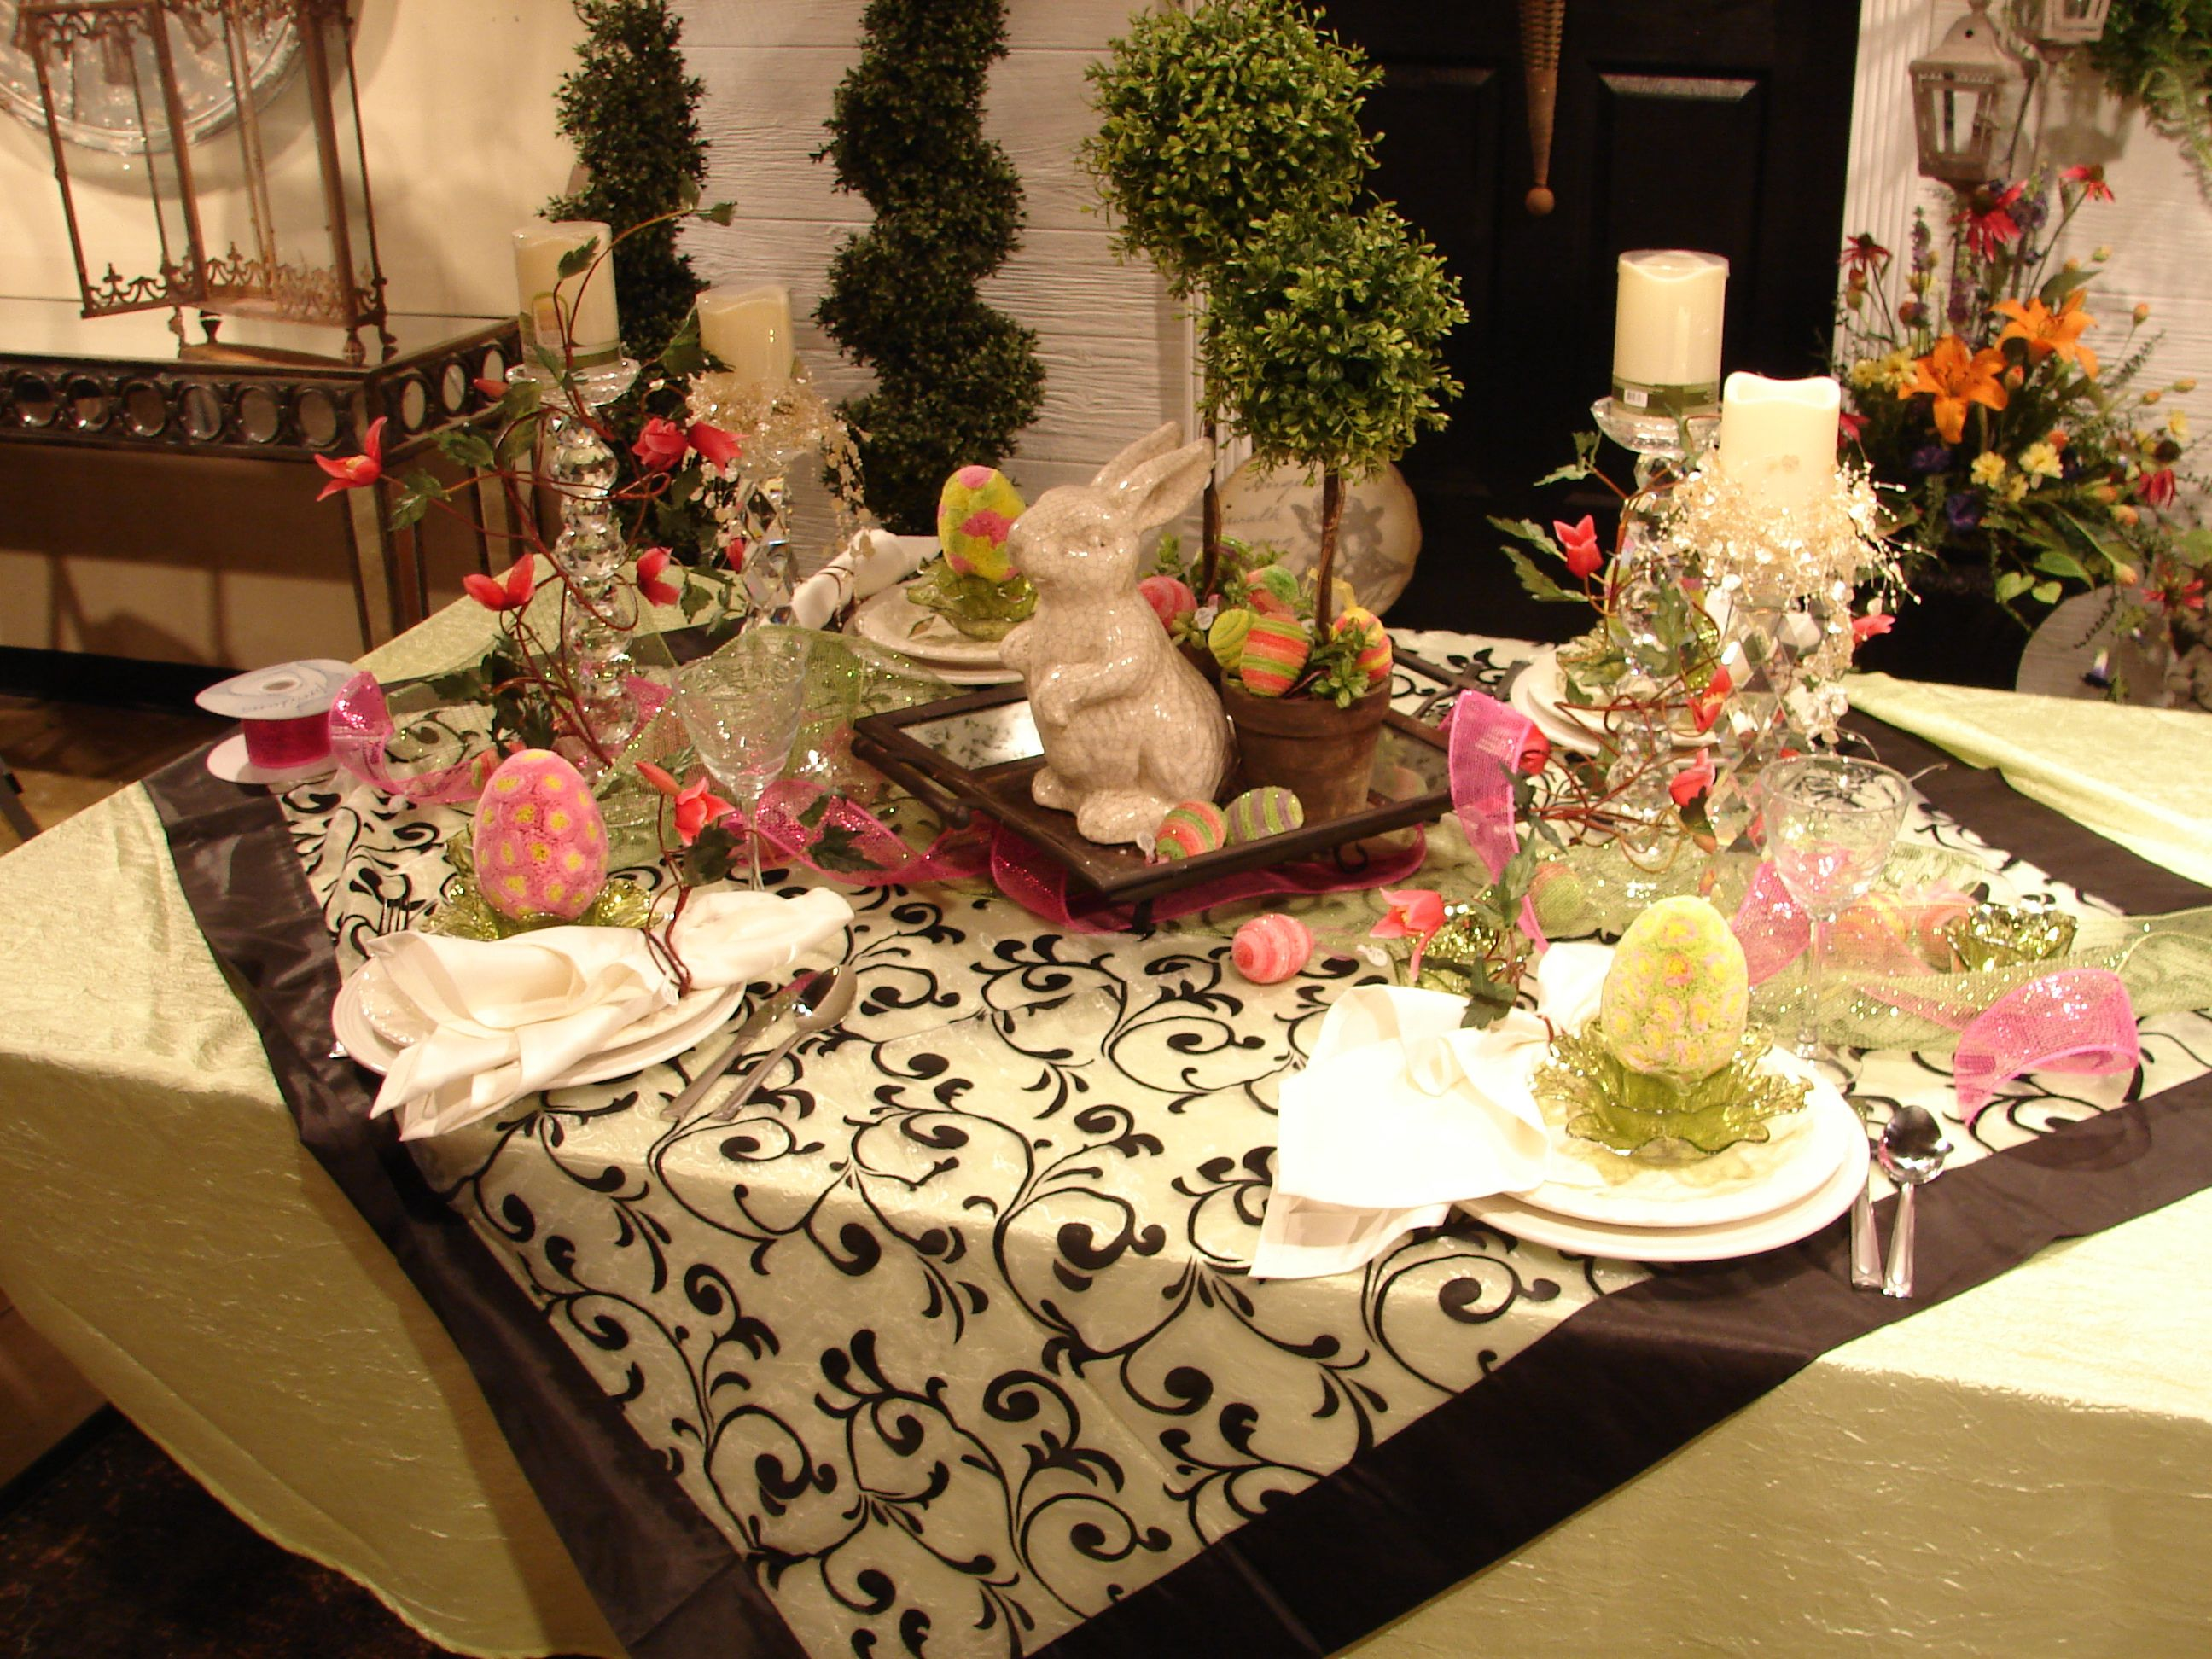 #Easter table setting, place a square table cloth on bigger rectangular table, lots of eggs, rabbits and topiaries...ribbon many elements going on but very nice  visit me at My Personal blog: http://stampingwithbibiana.blogspot.com/